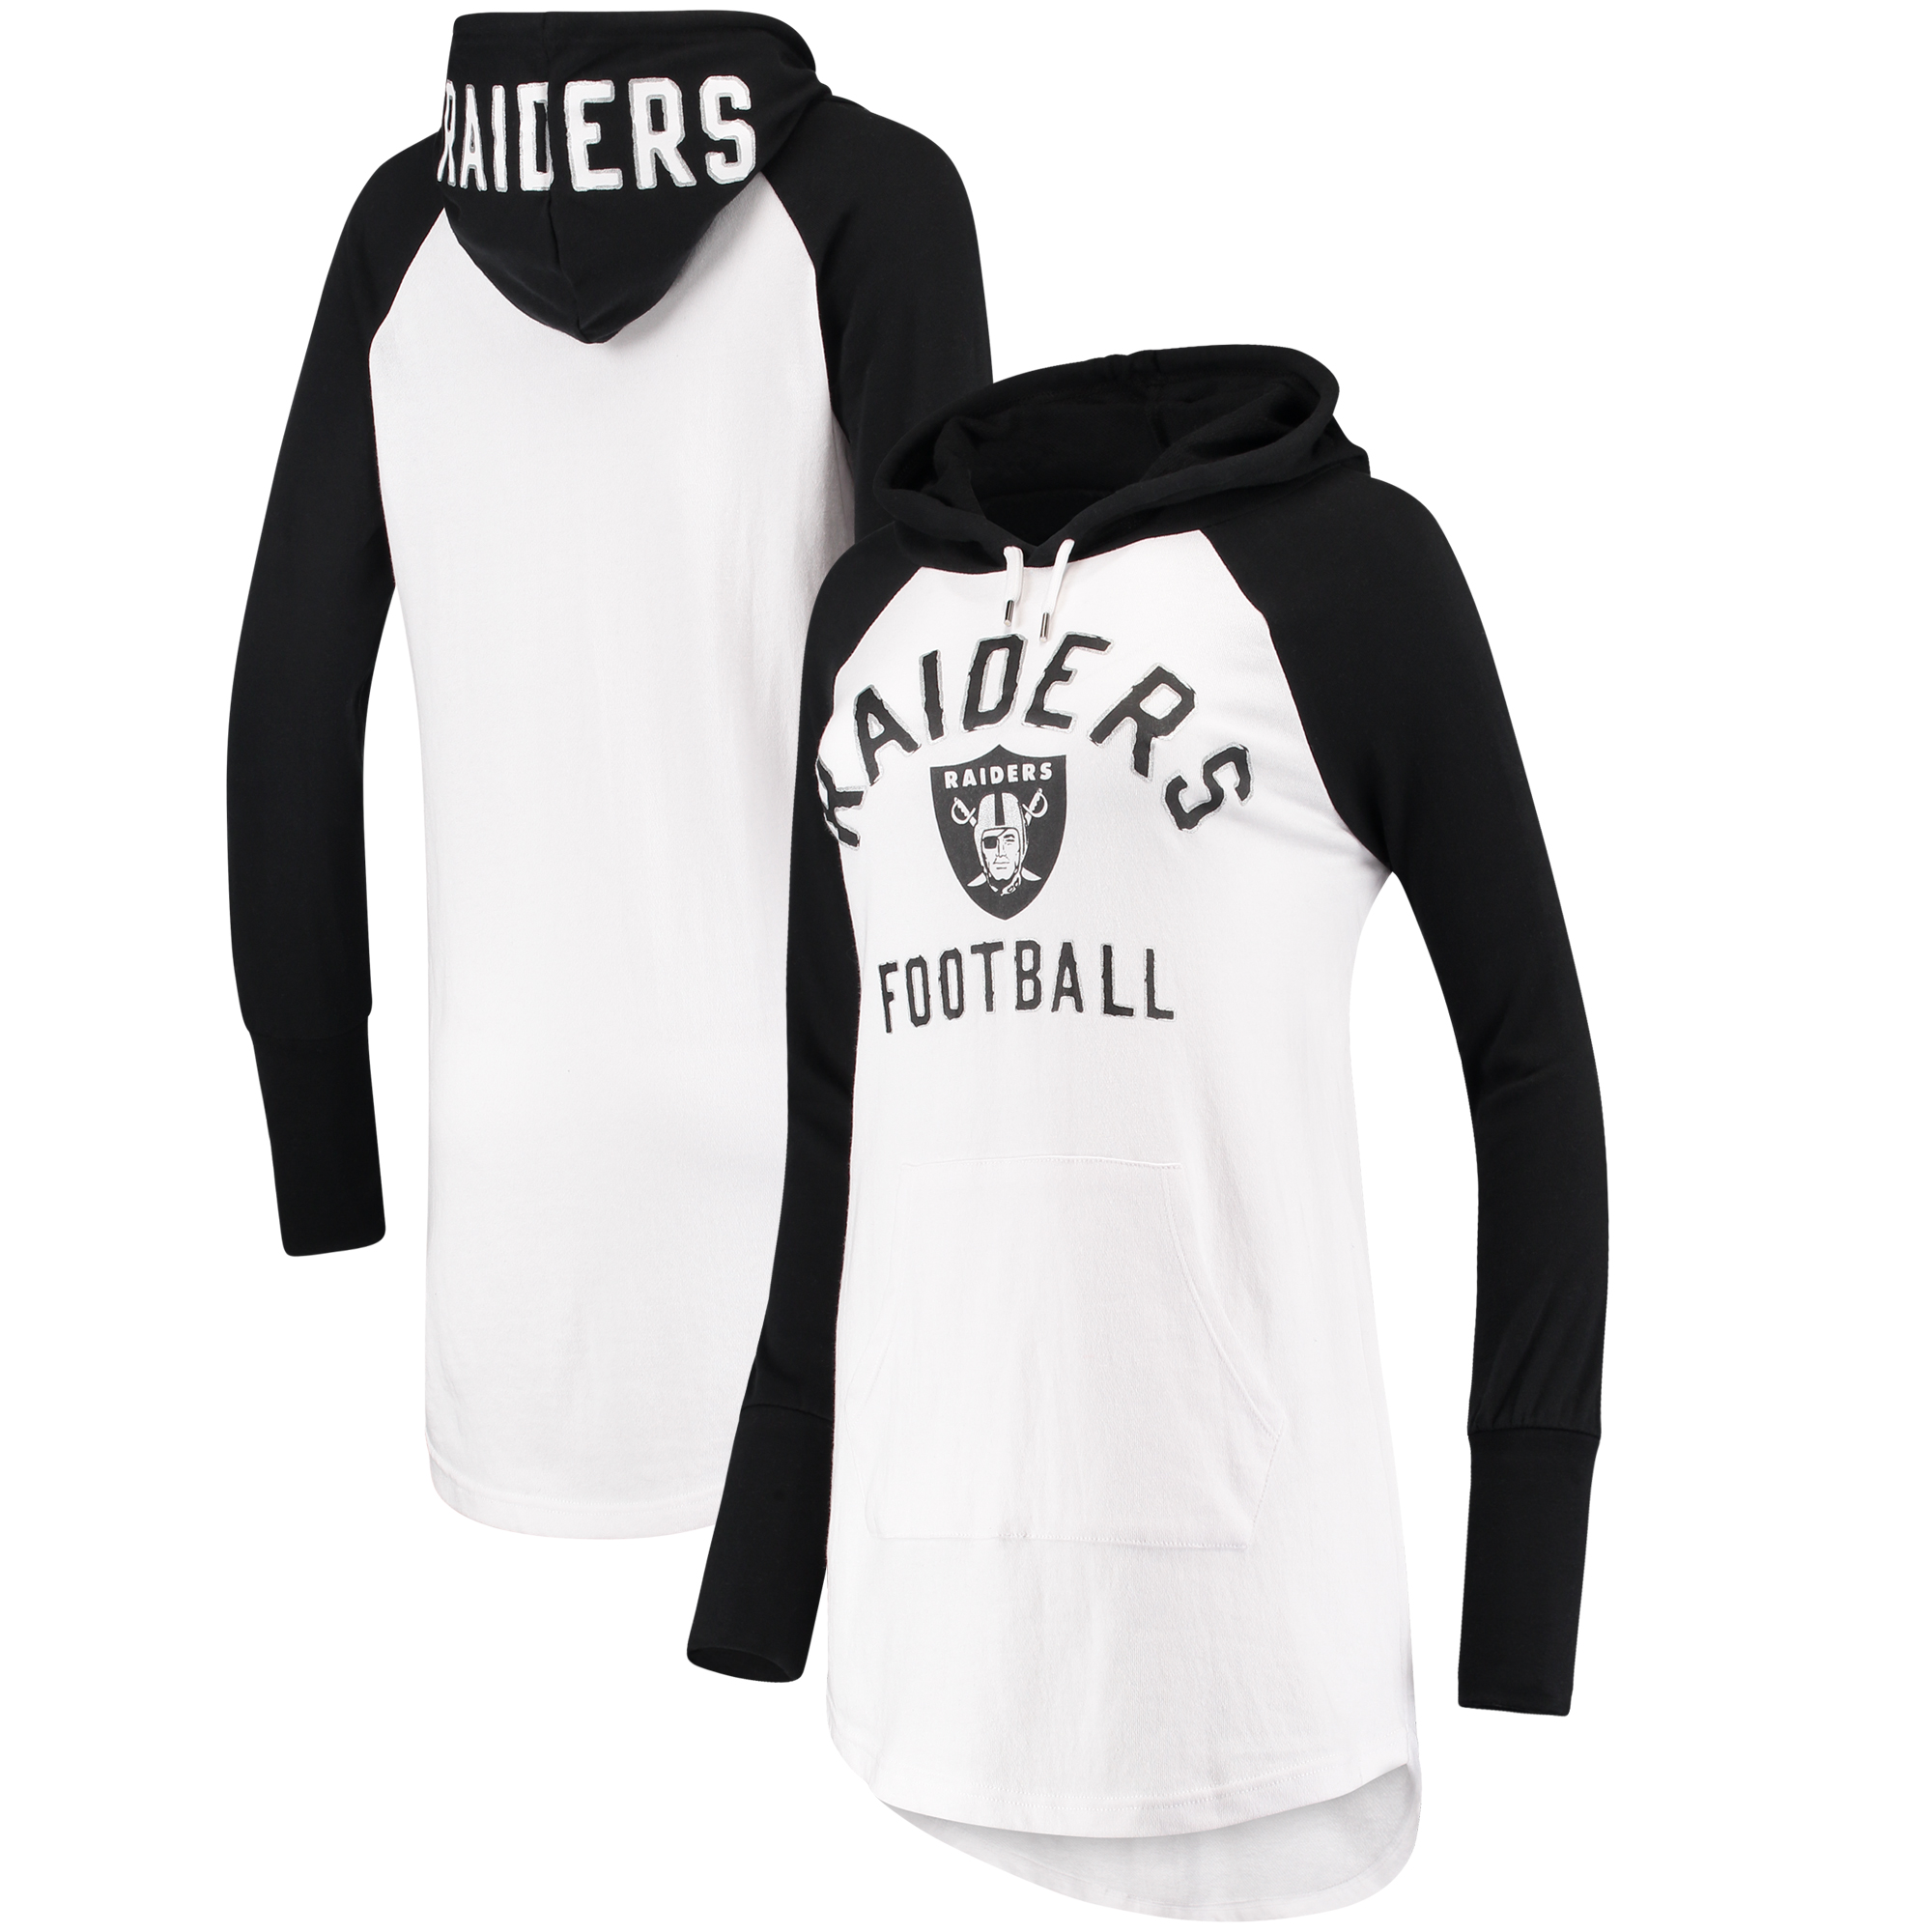 Oakland Raiders G-III 4Her by Carl Banks Women's All Division Raglan Sleeve Pullover Hoodie - White/Black